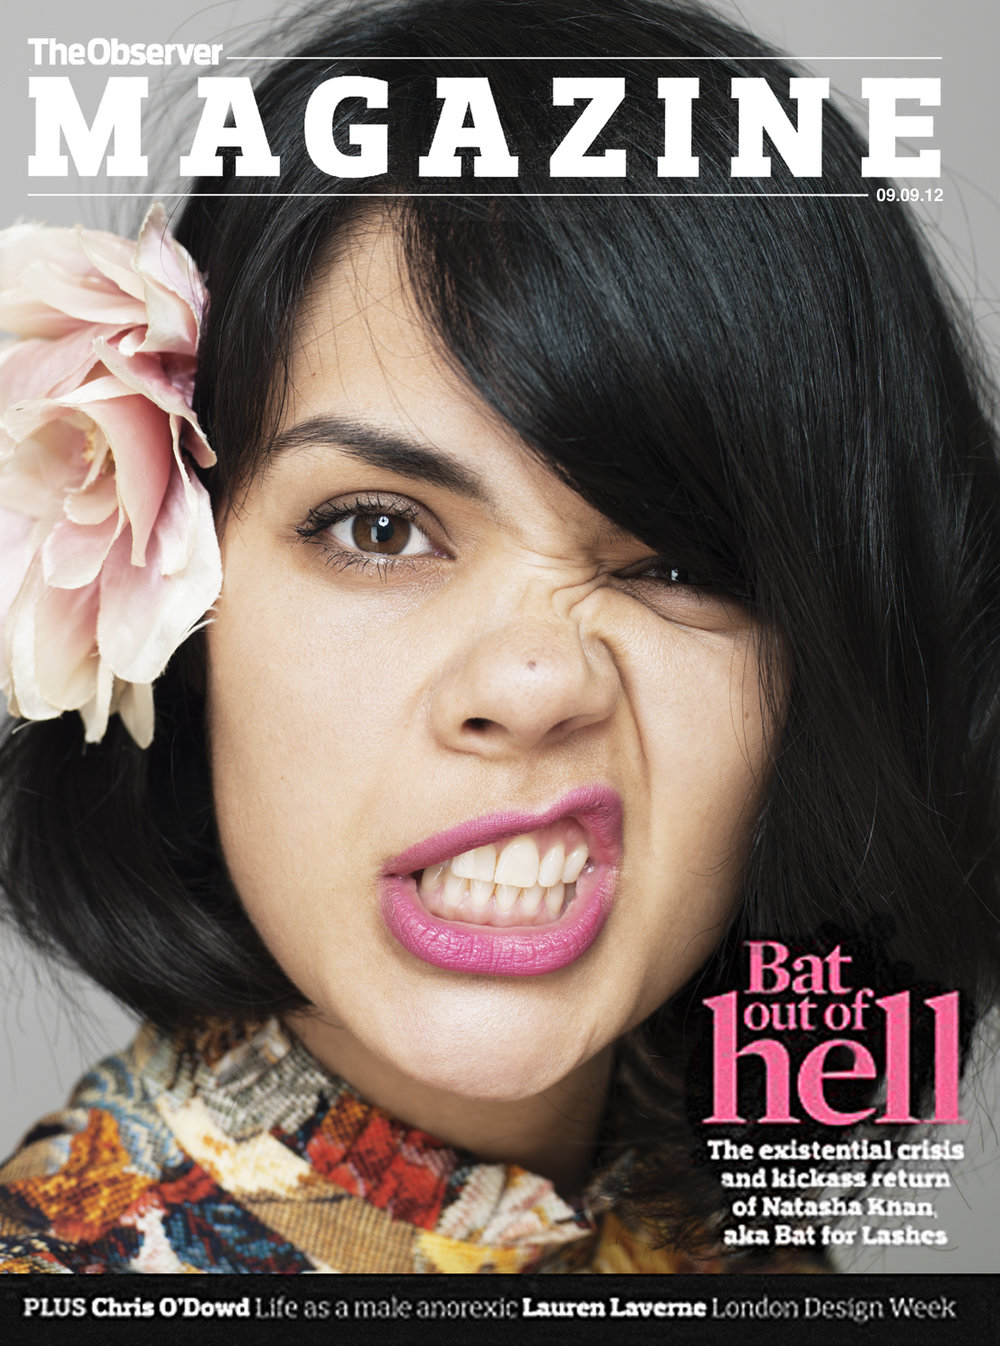 Bat_For_Lashes_Natasha_162.jpg